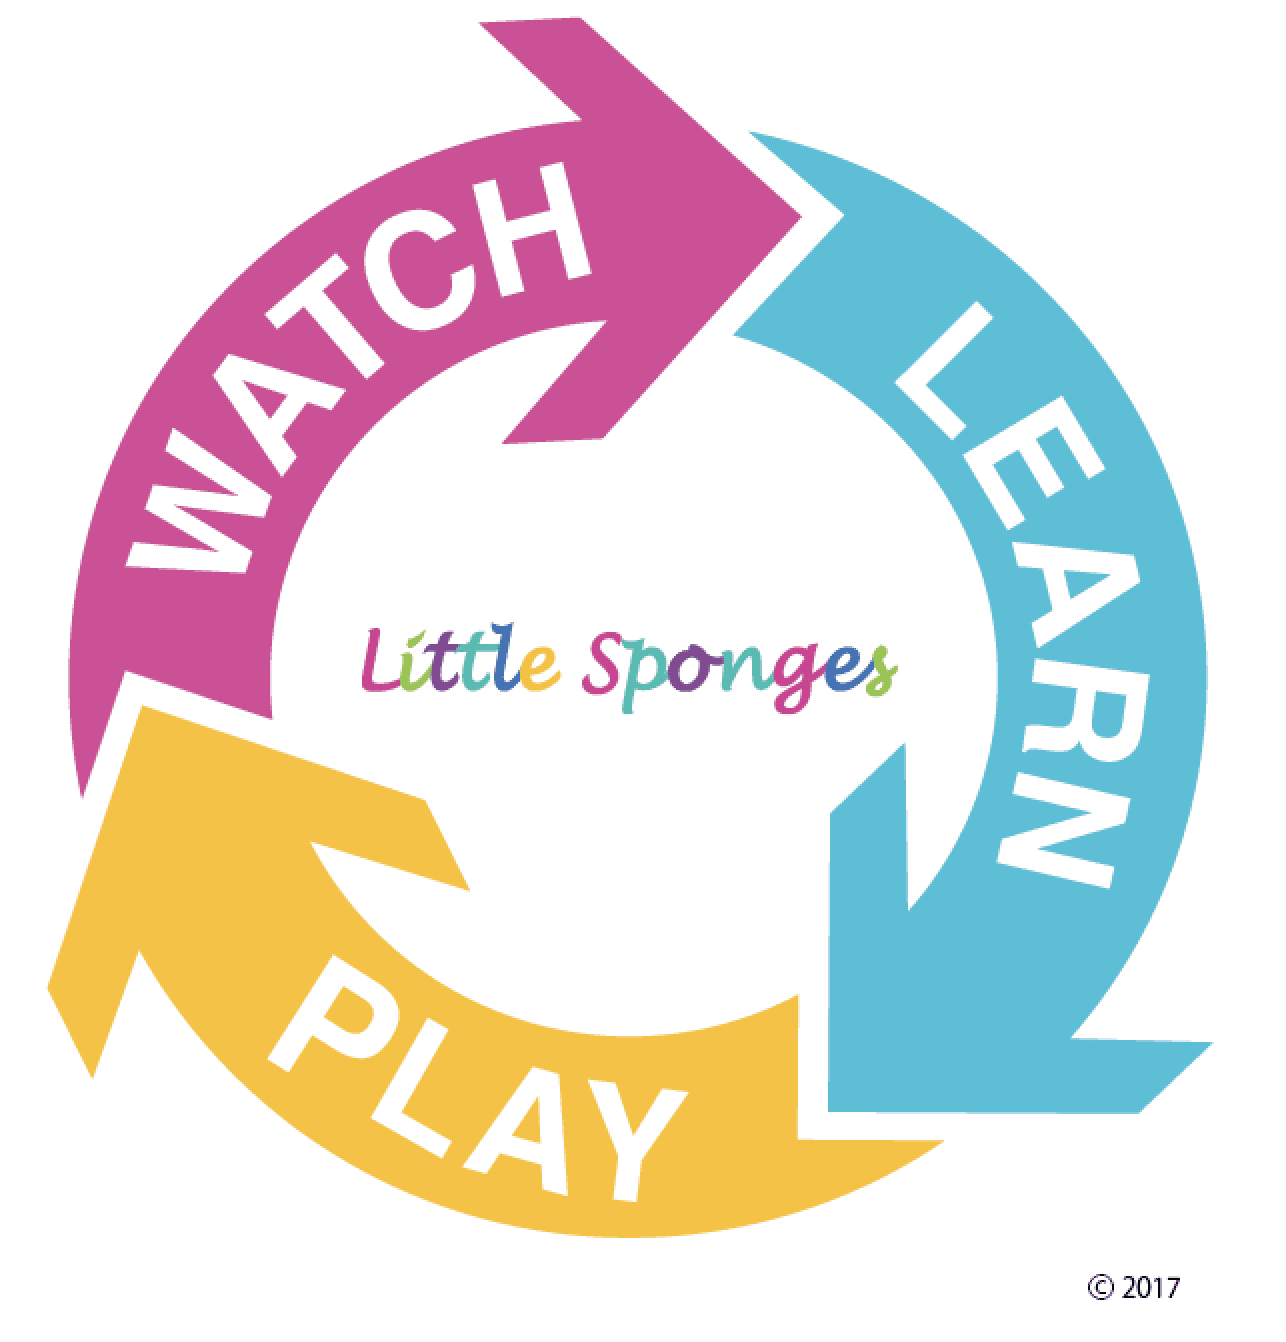 Teaching Methodology Little Sponges